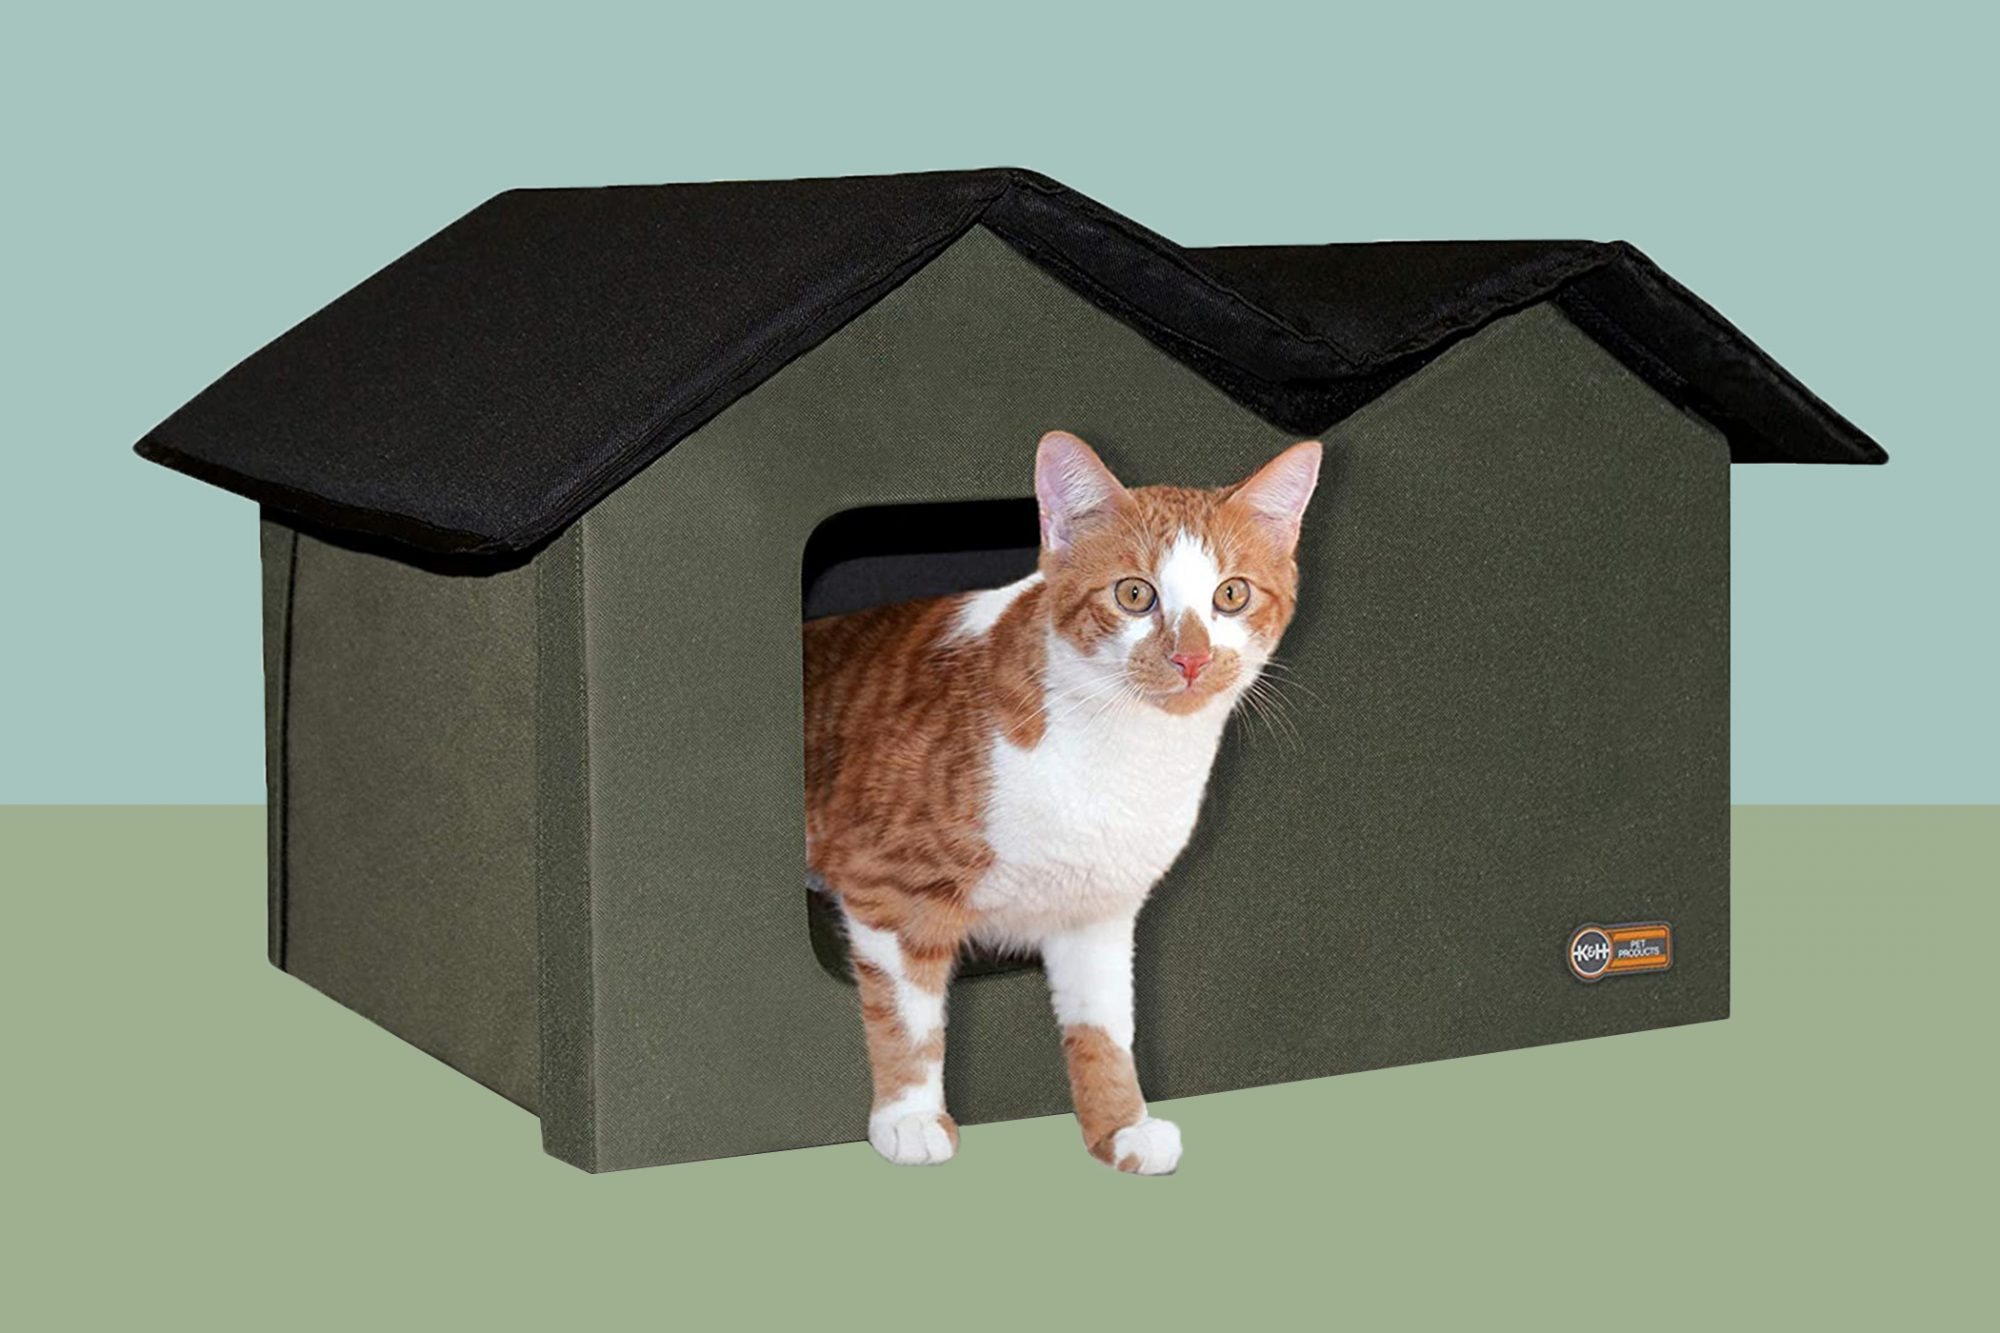 Orange and white cat exits heated cat house